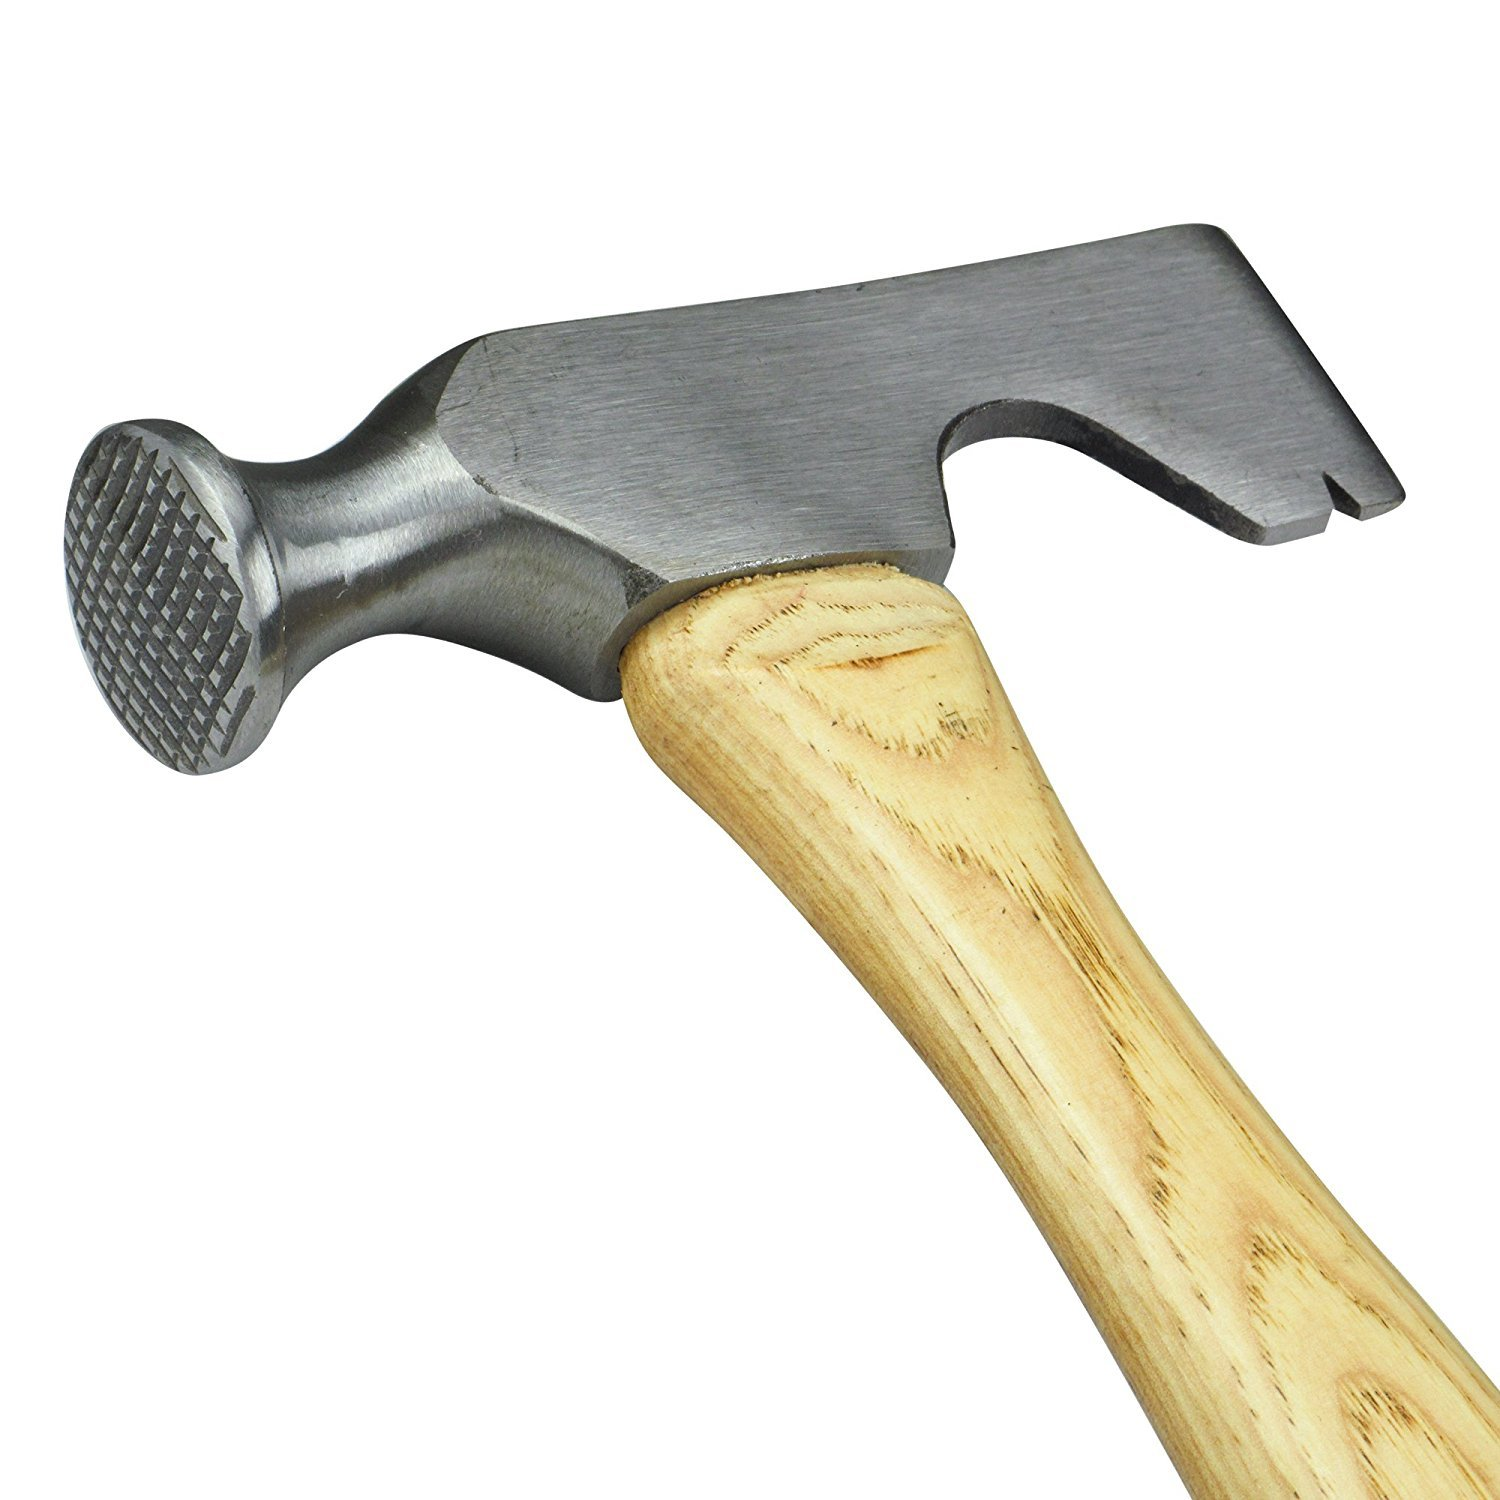 14-Ounce Professional Drywall Hammer with Hickory Handle, HMWD-14 - Sold by Ucostore Only by ucostore